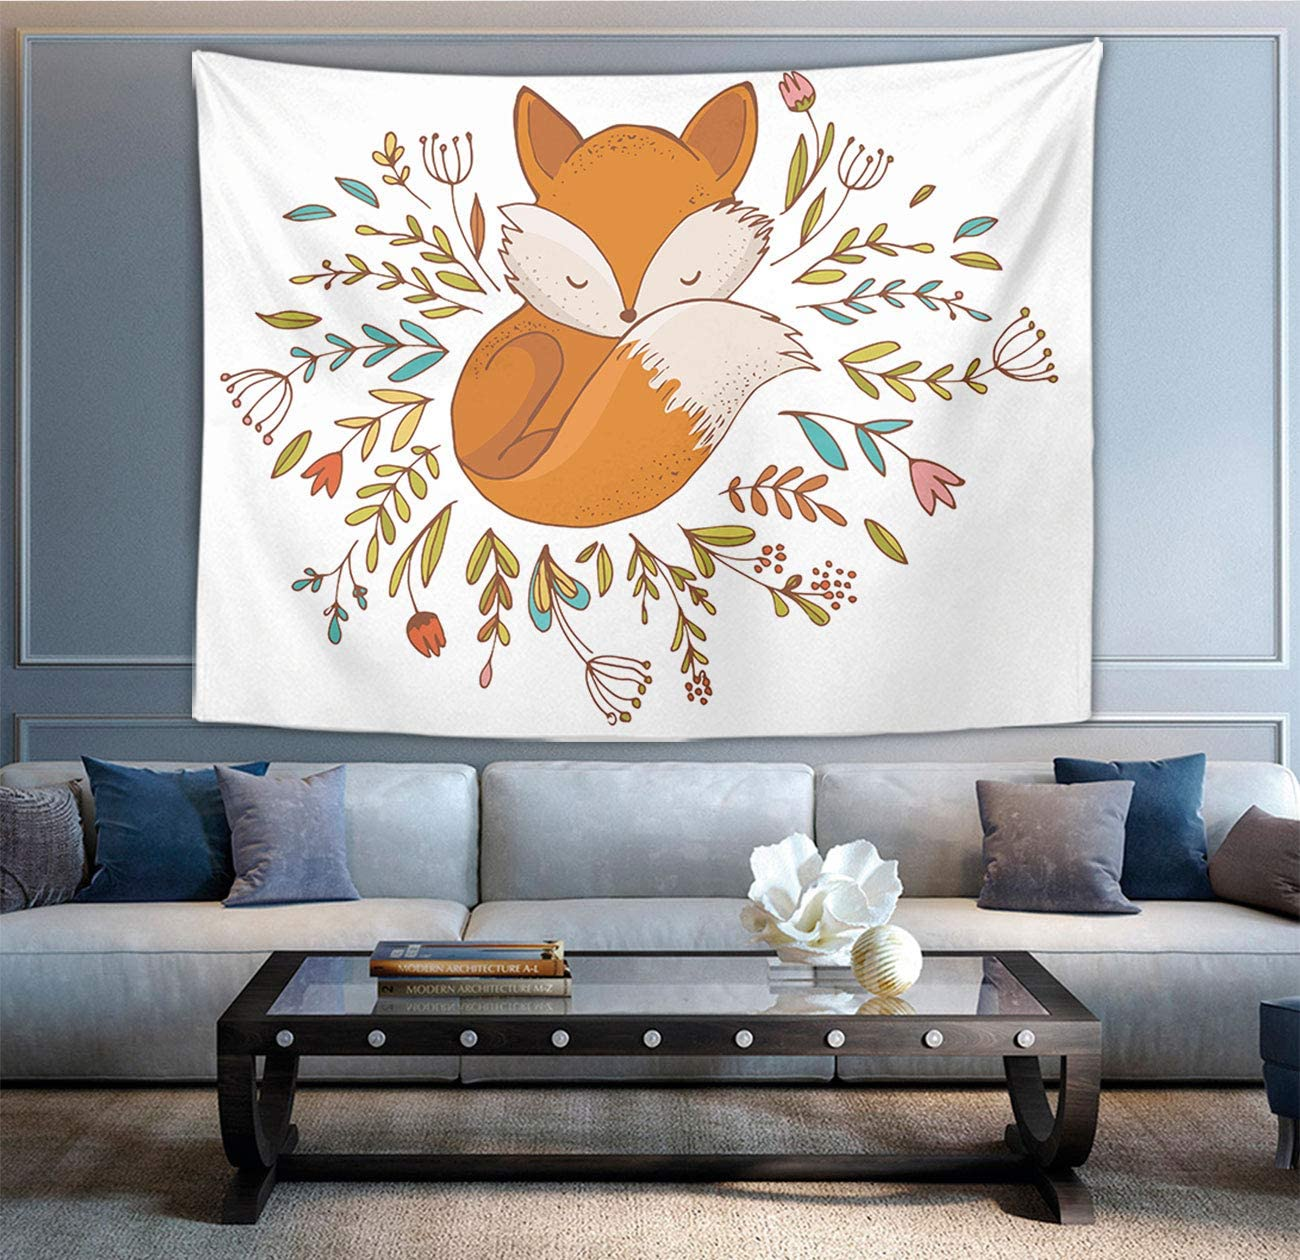 Hippie Wall Tapestry Bedspread Picnic Bedsheet Blanket Wall Art Polyester Fox Sleeping In A Floral Made Bed Circle Tapestries Home Decorations for Living Room Bedroom Dorm Decor in 60×90 Inches